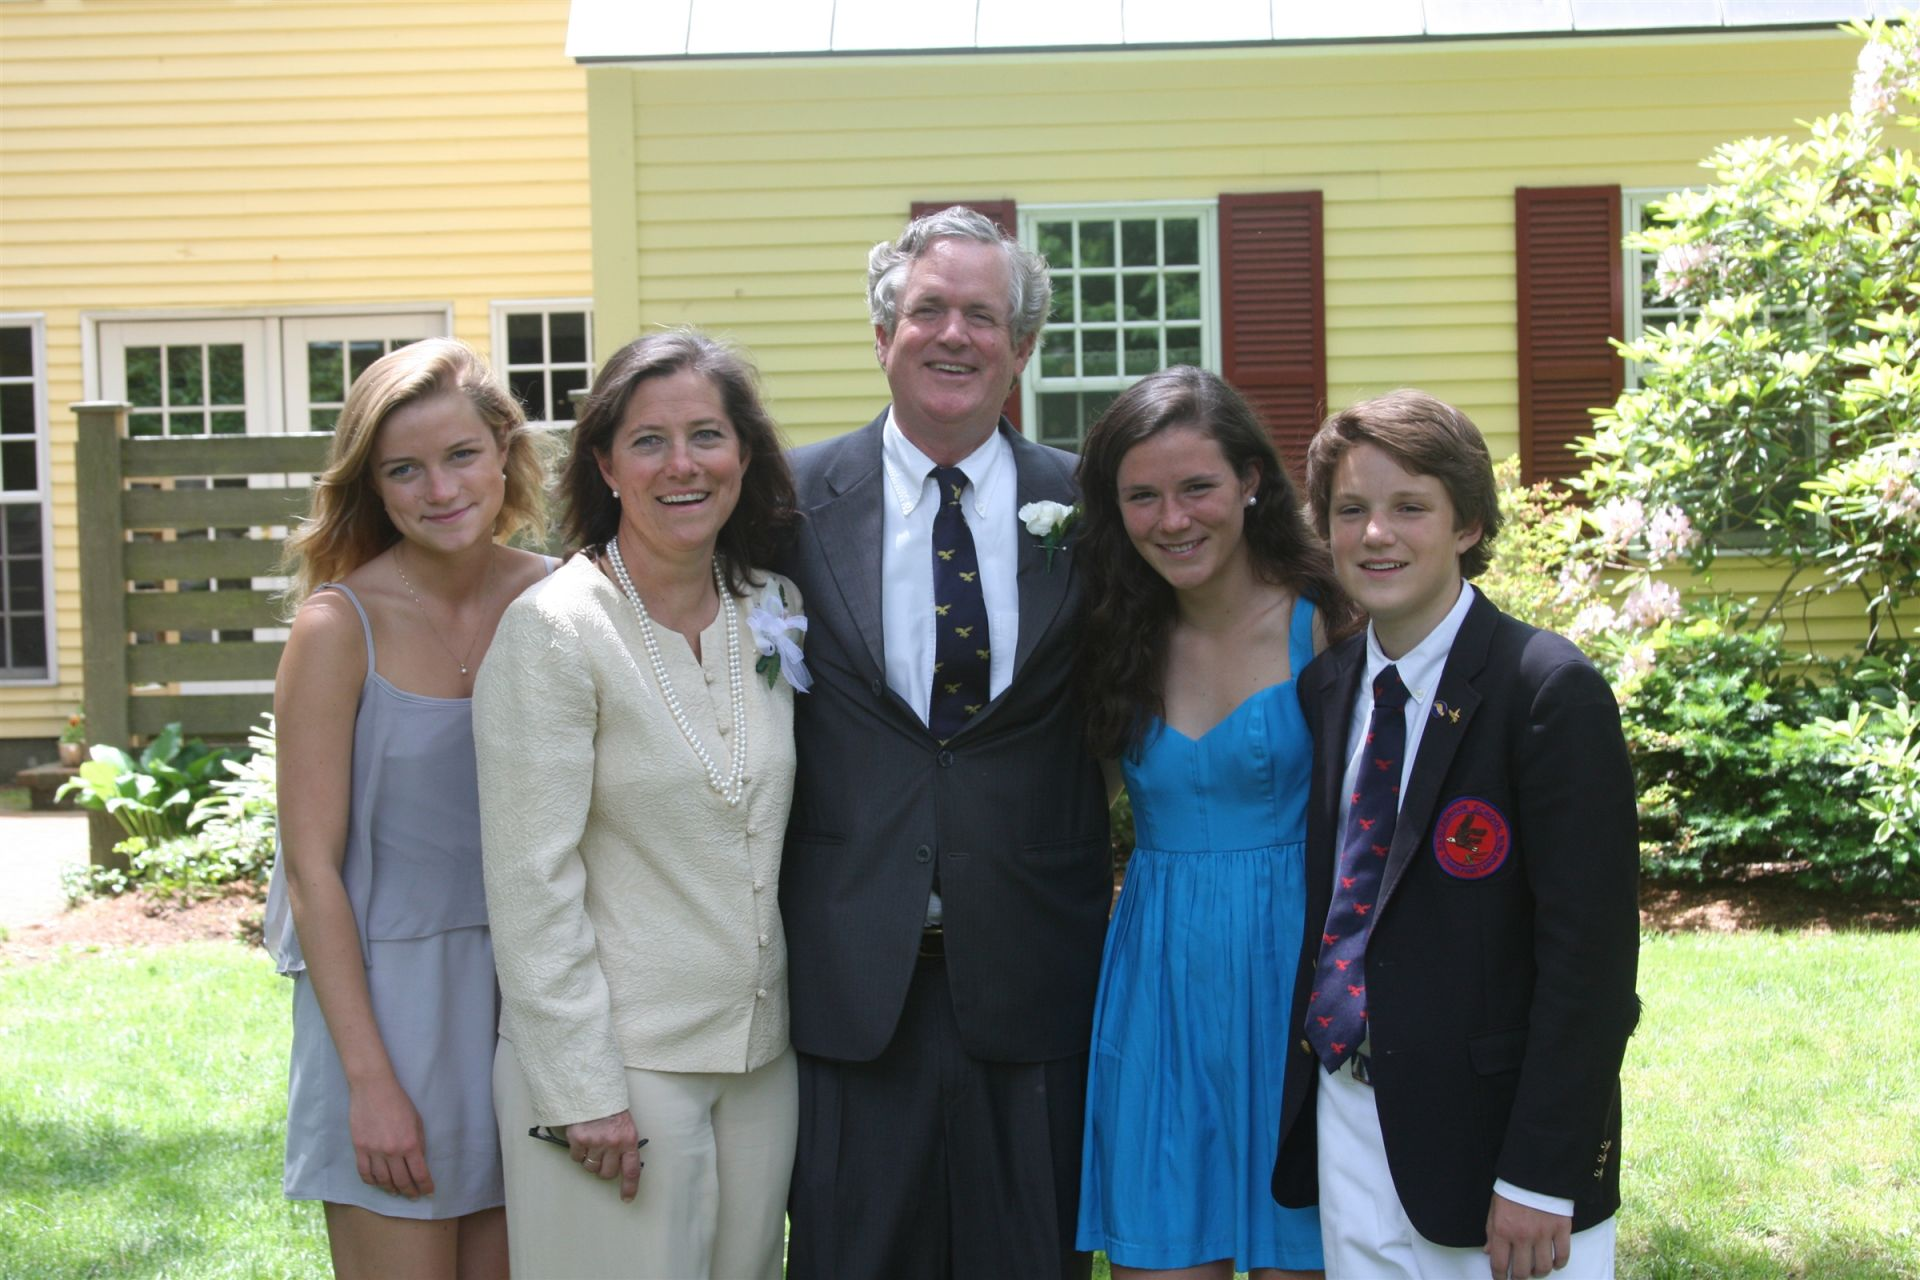 Little Hundridge is the home of Headmaster Andy Chase '73, his wife Rachel Blain, and his children, Calla '07, Lucy '09, and Sam '12.